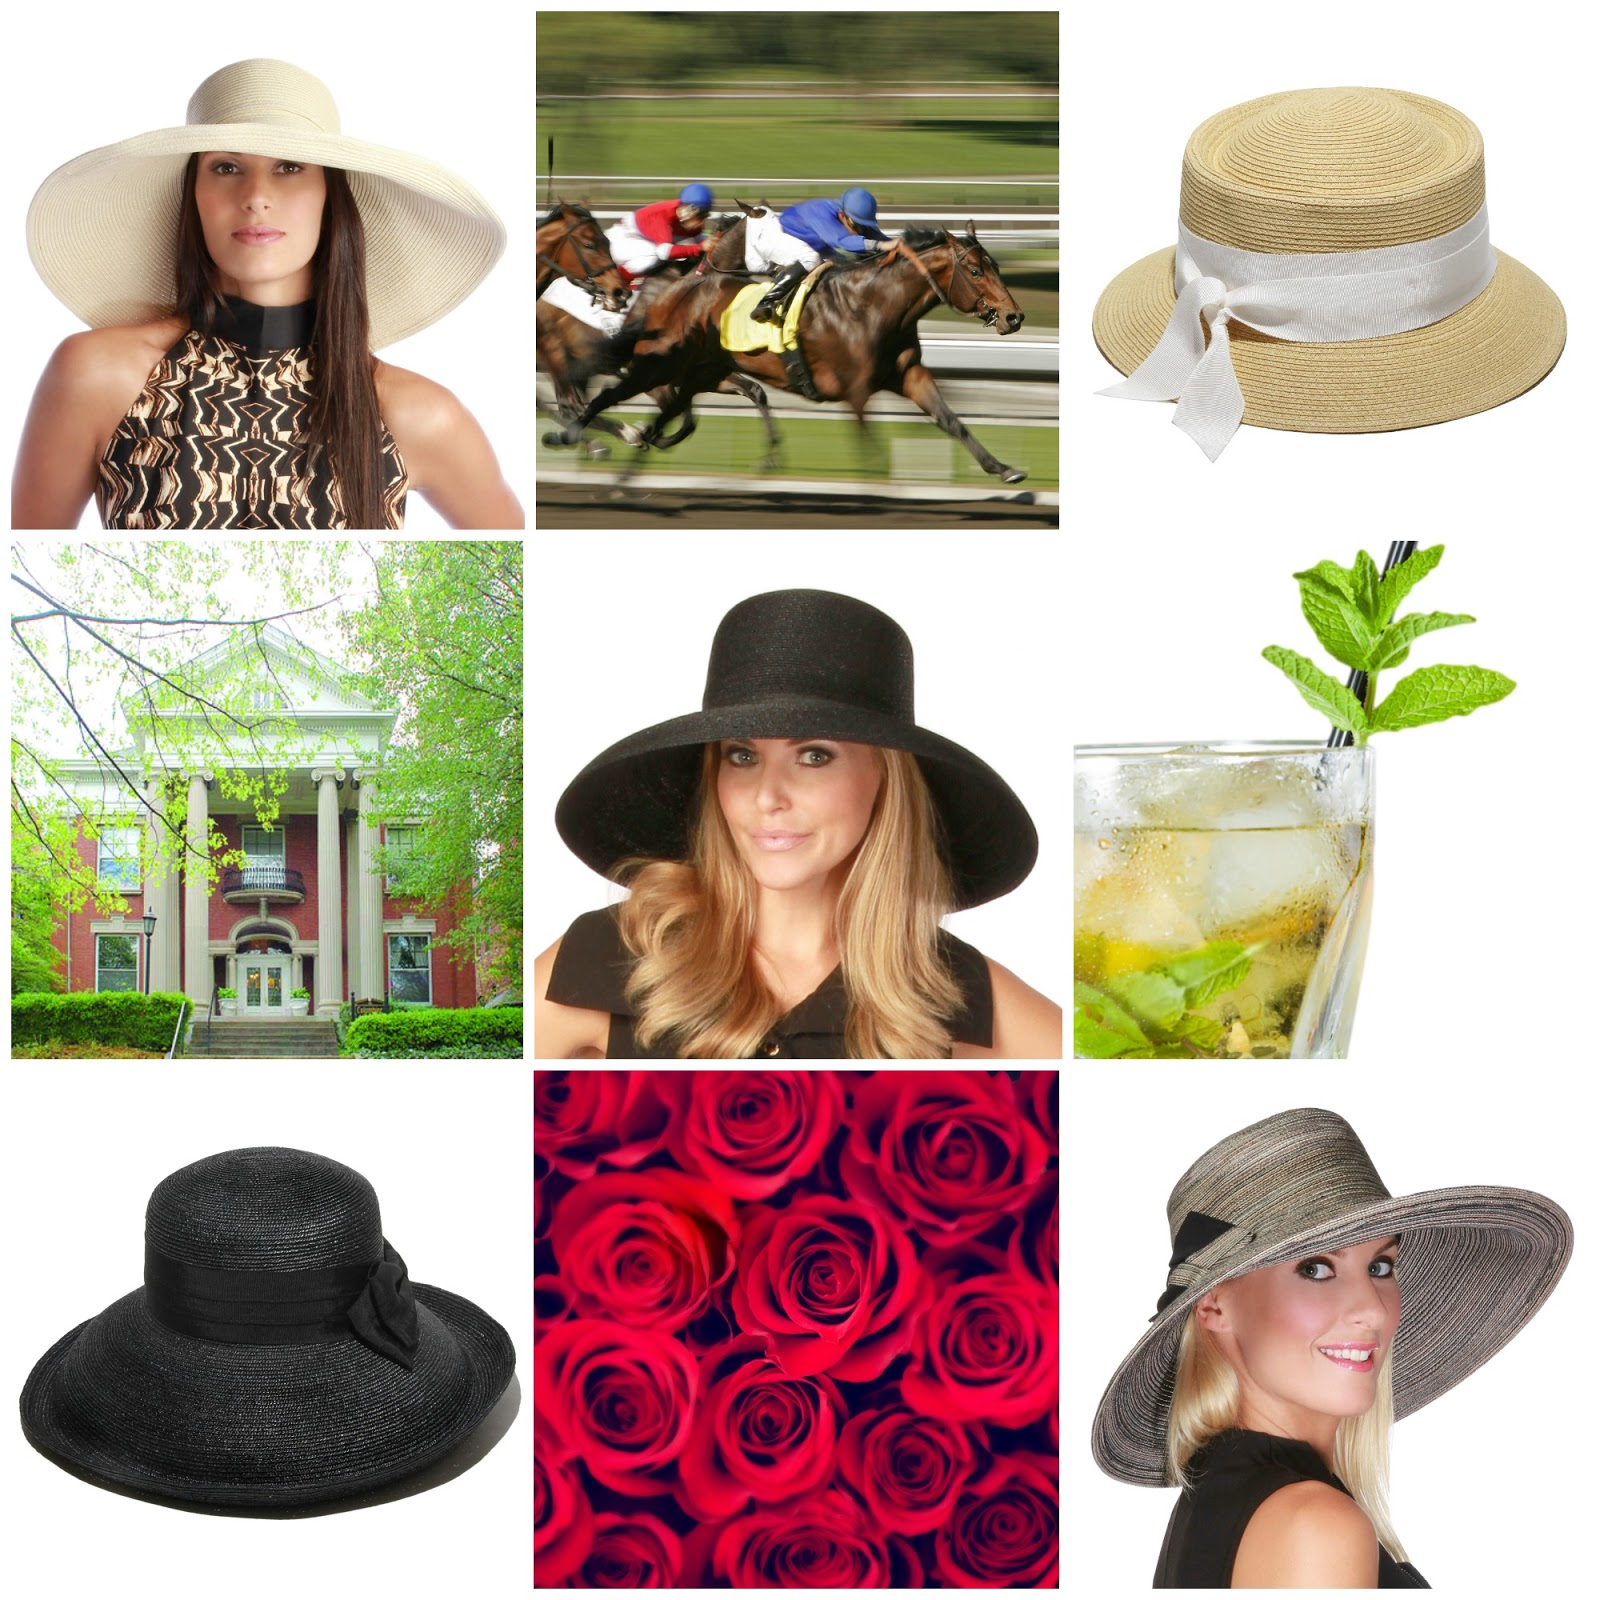 http://www.solescapes.com/Kentucky-Derby-Hats-s/2197.htm